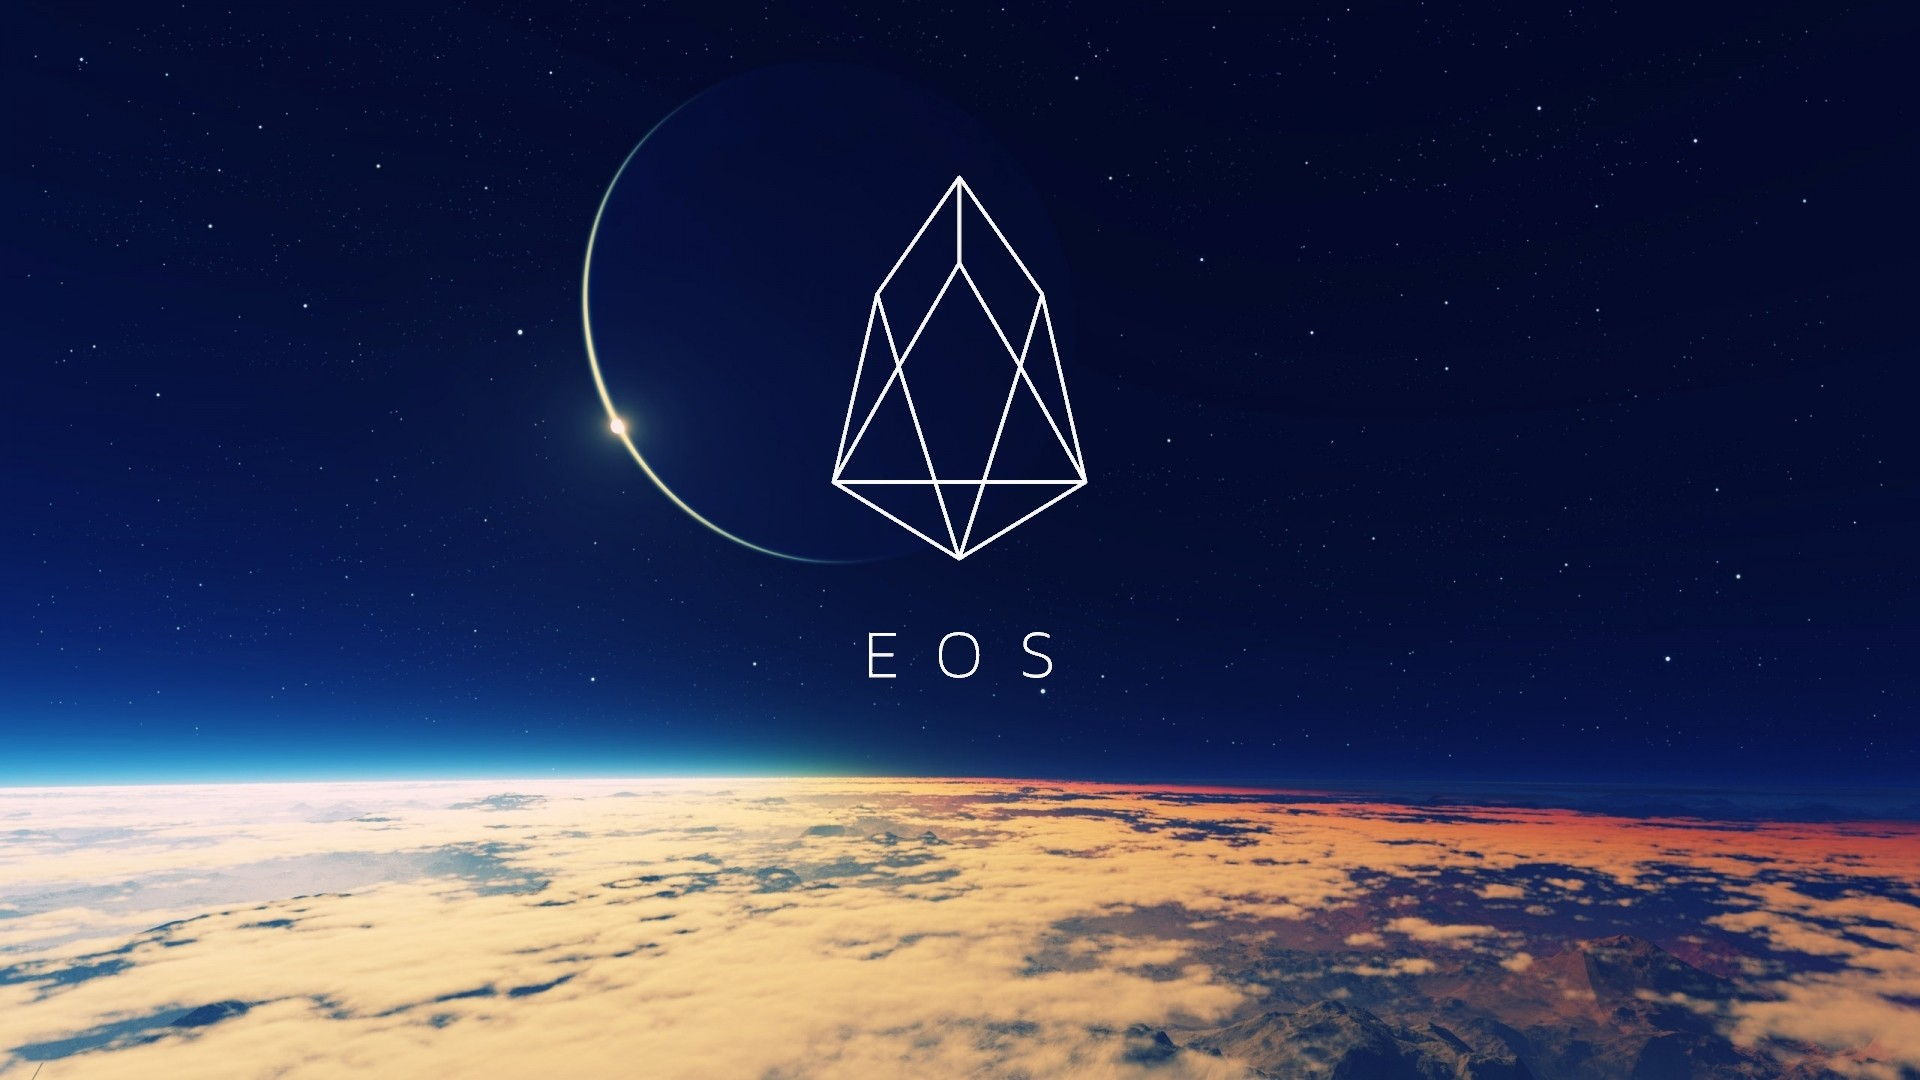 Res: 1920x1080, The EOS logo - the Chestahedron - a Luciferic star / broken pentagram in  slight disguise